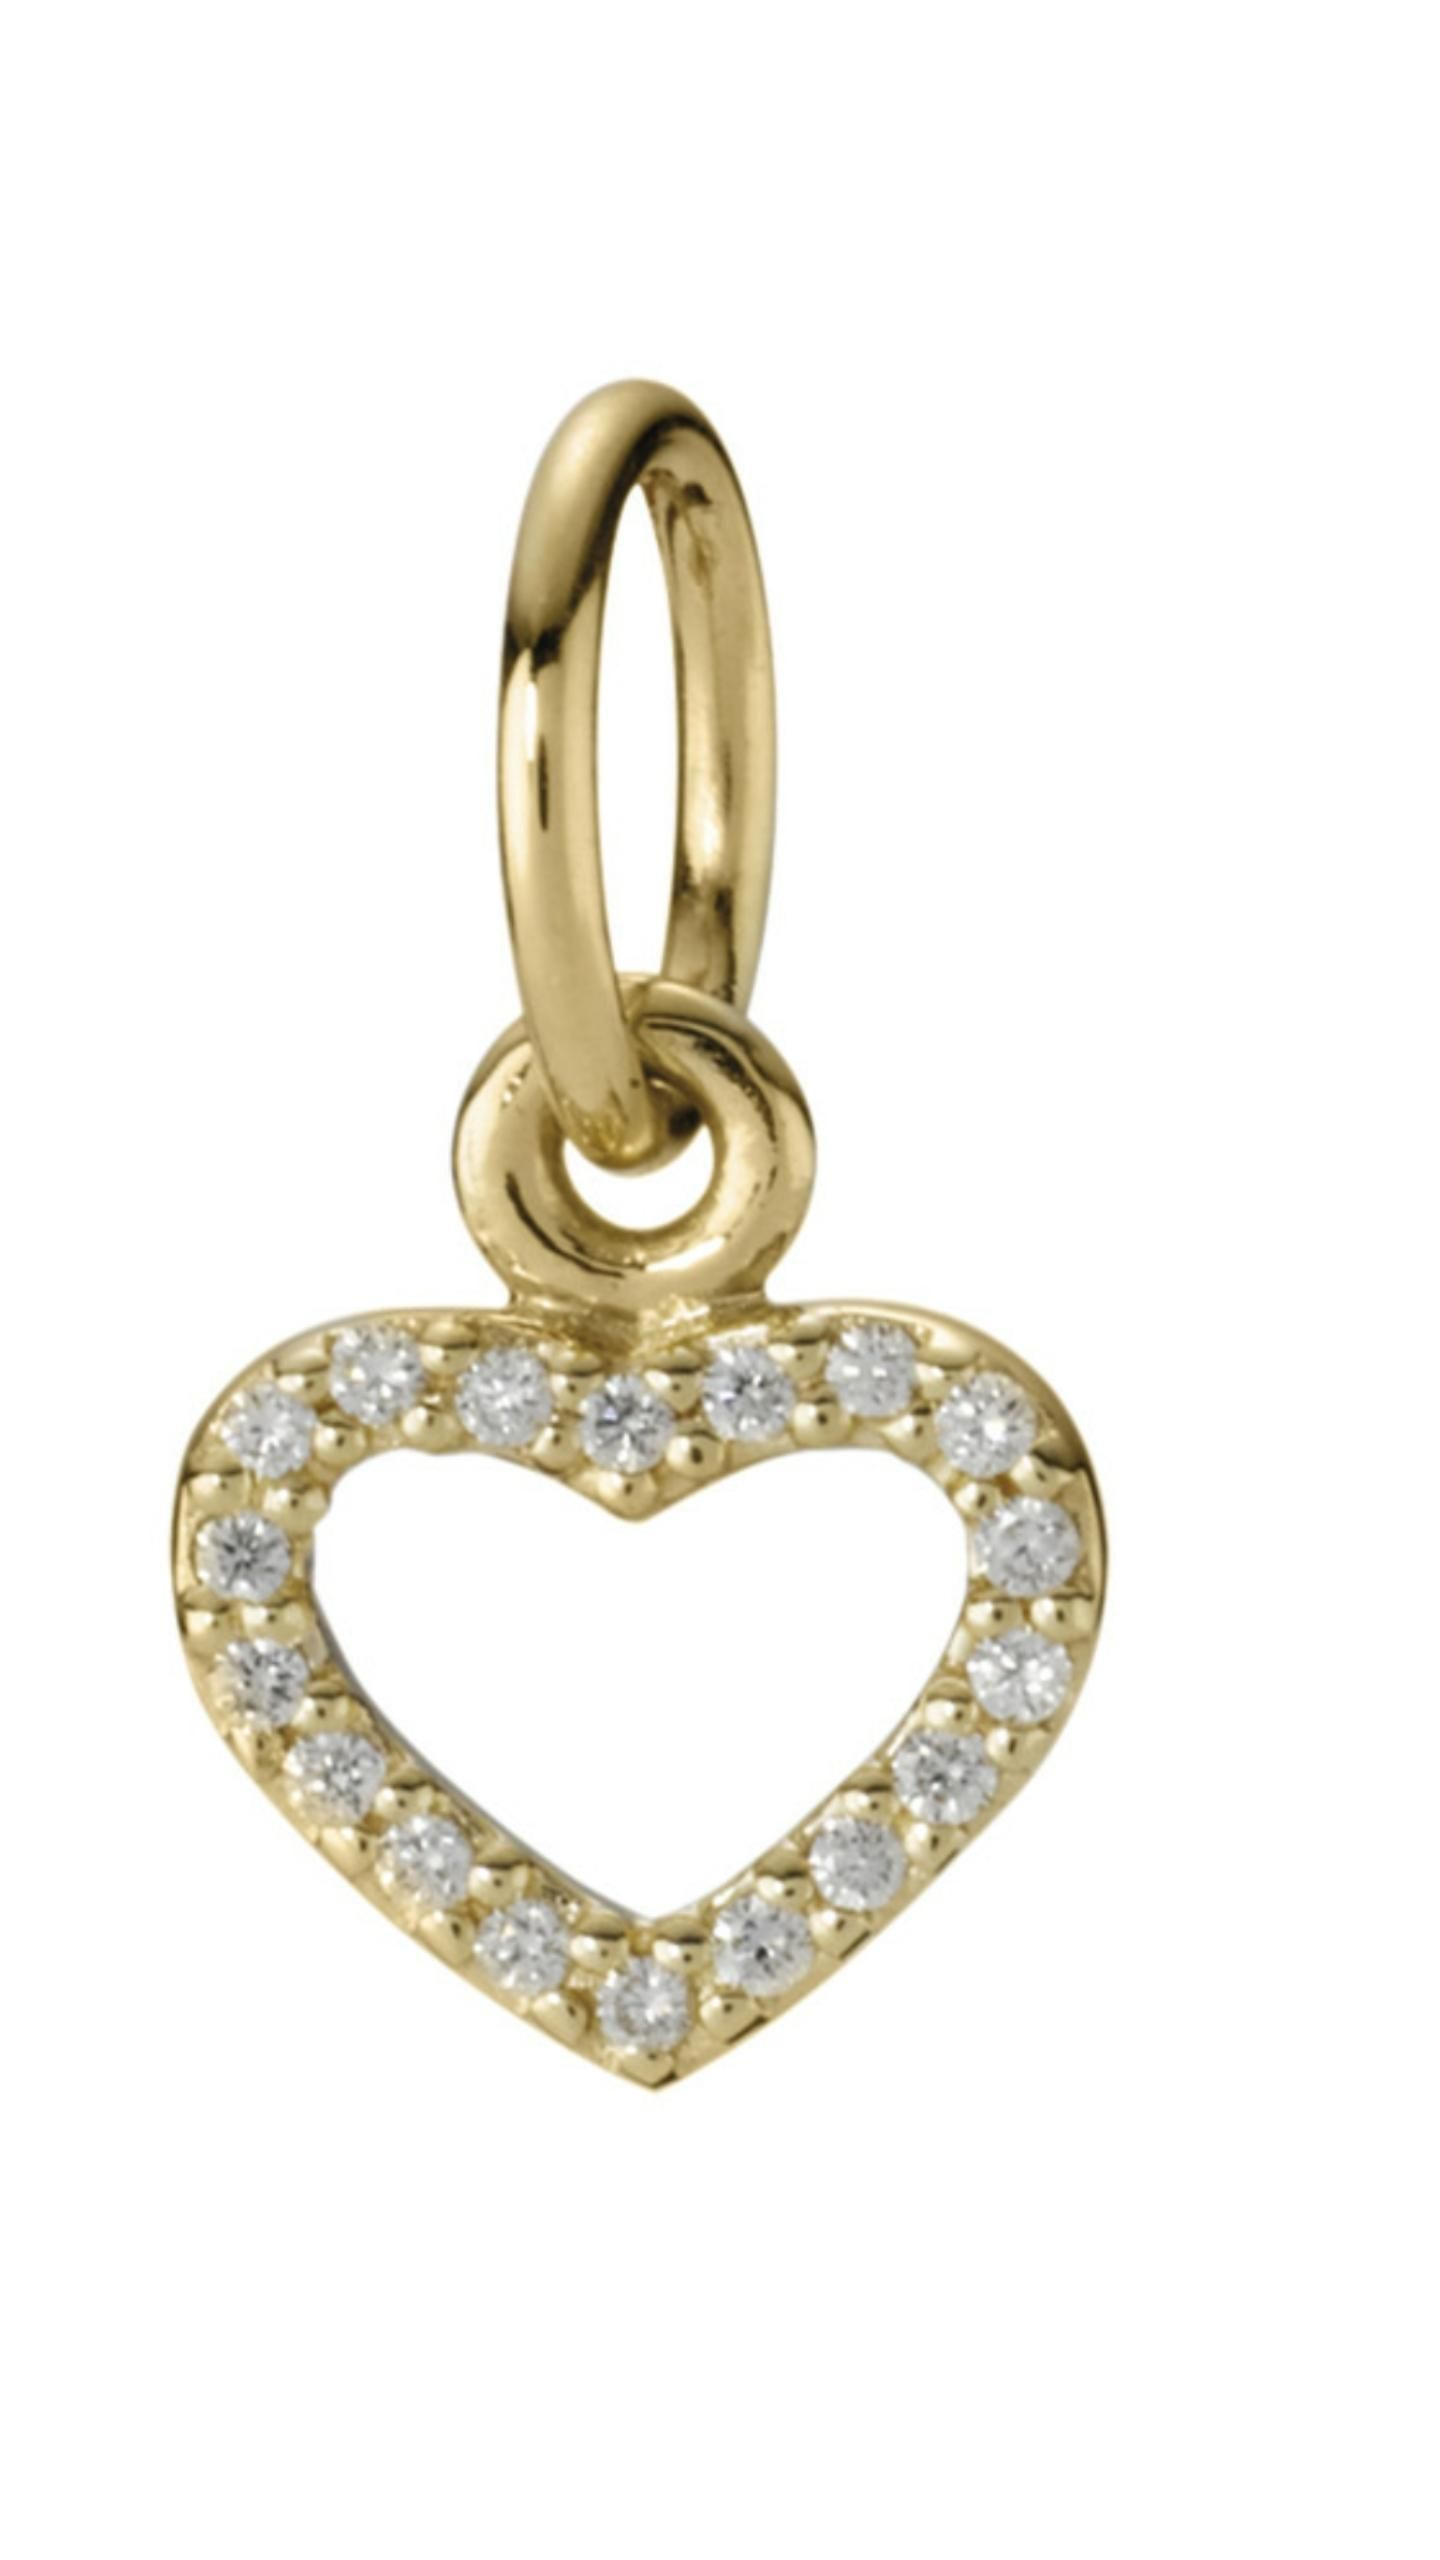 acd1677af Free shipping and guaranteed authenticity on Pandora Be My Valentine  14kGold Diamond Heart Charm 350136D Retired at Tradesy.